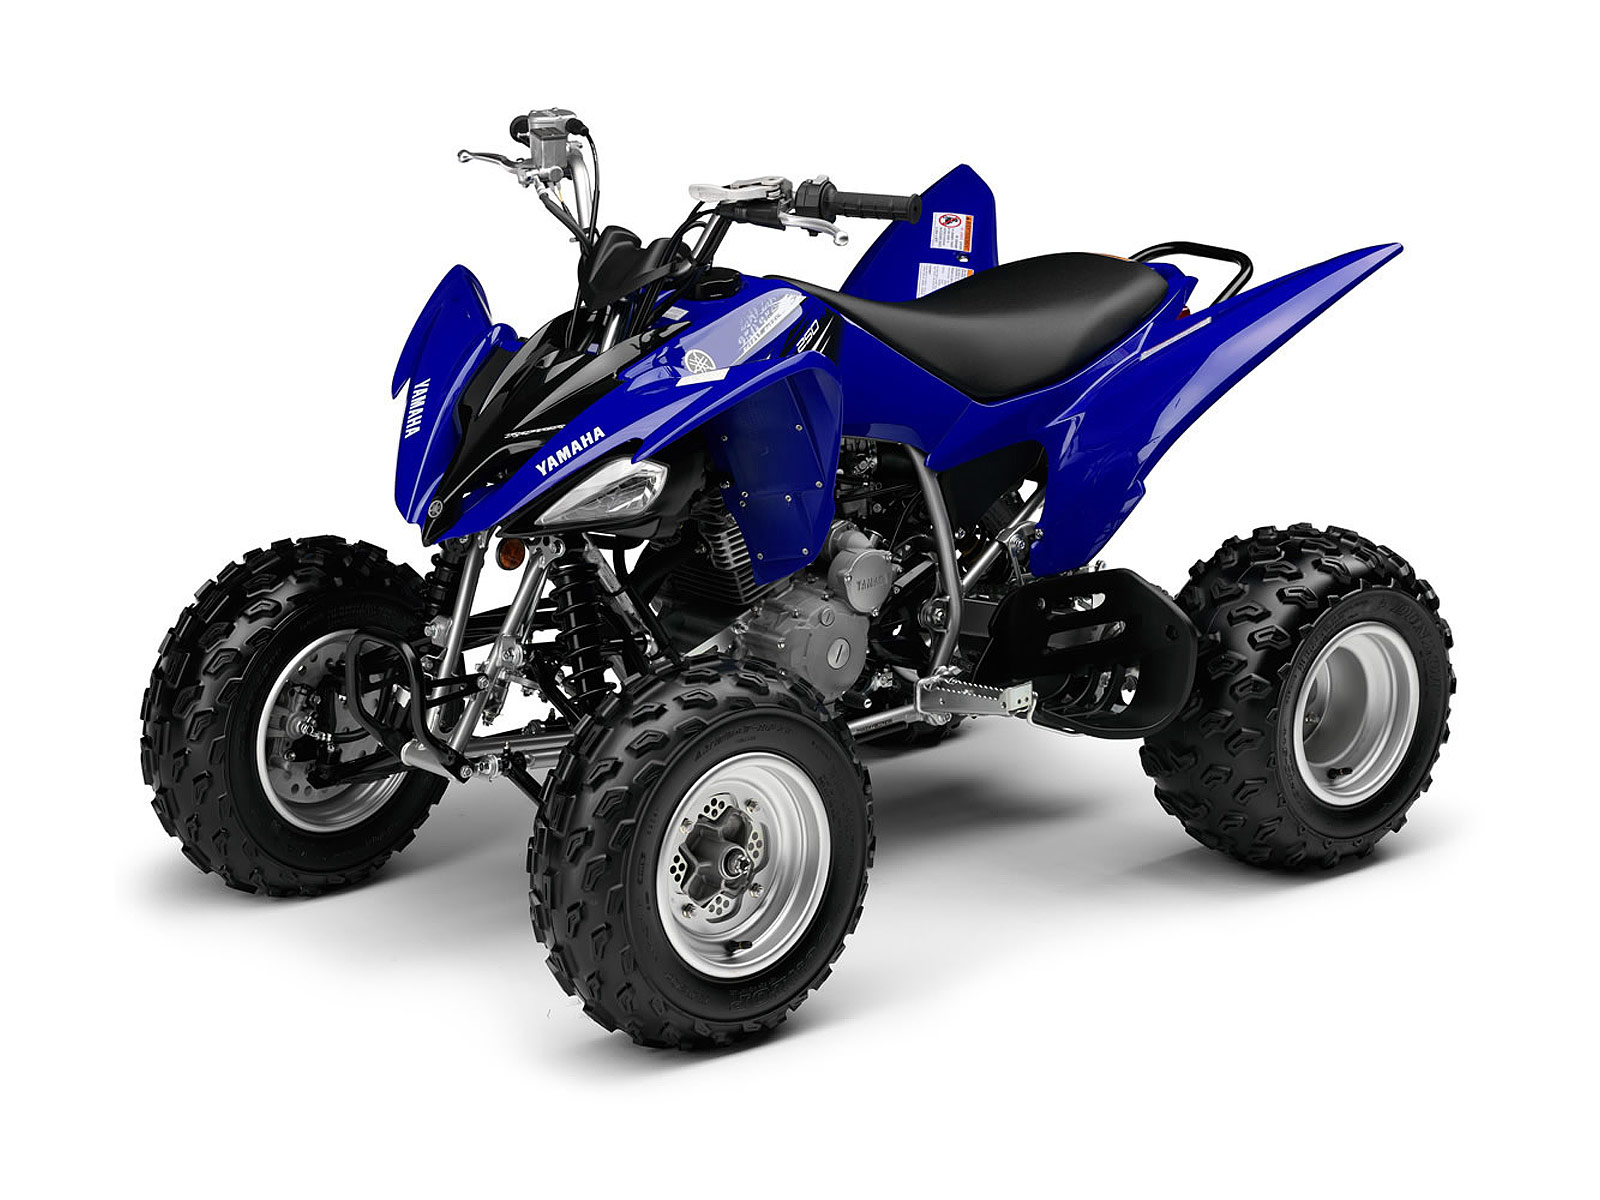 2012 YAMAHA Raptor 250 ATV pictures review specifications 1600x1200